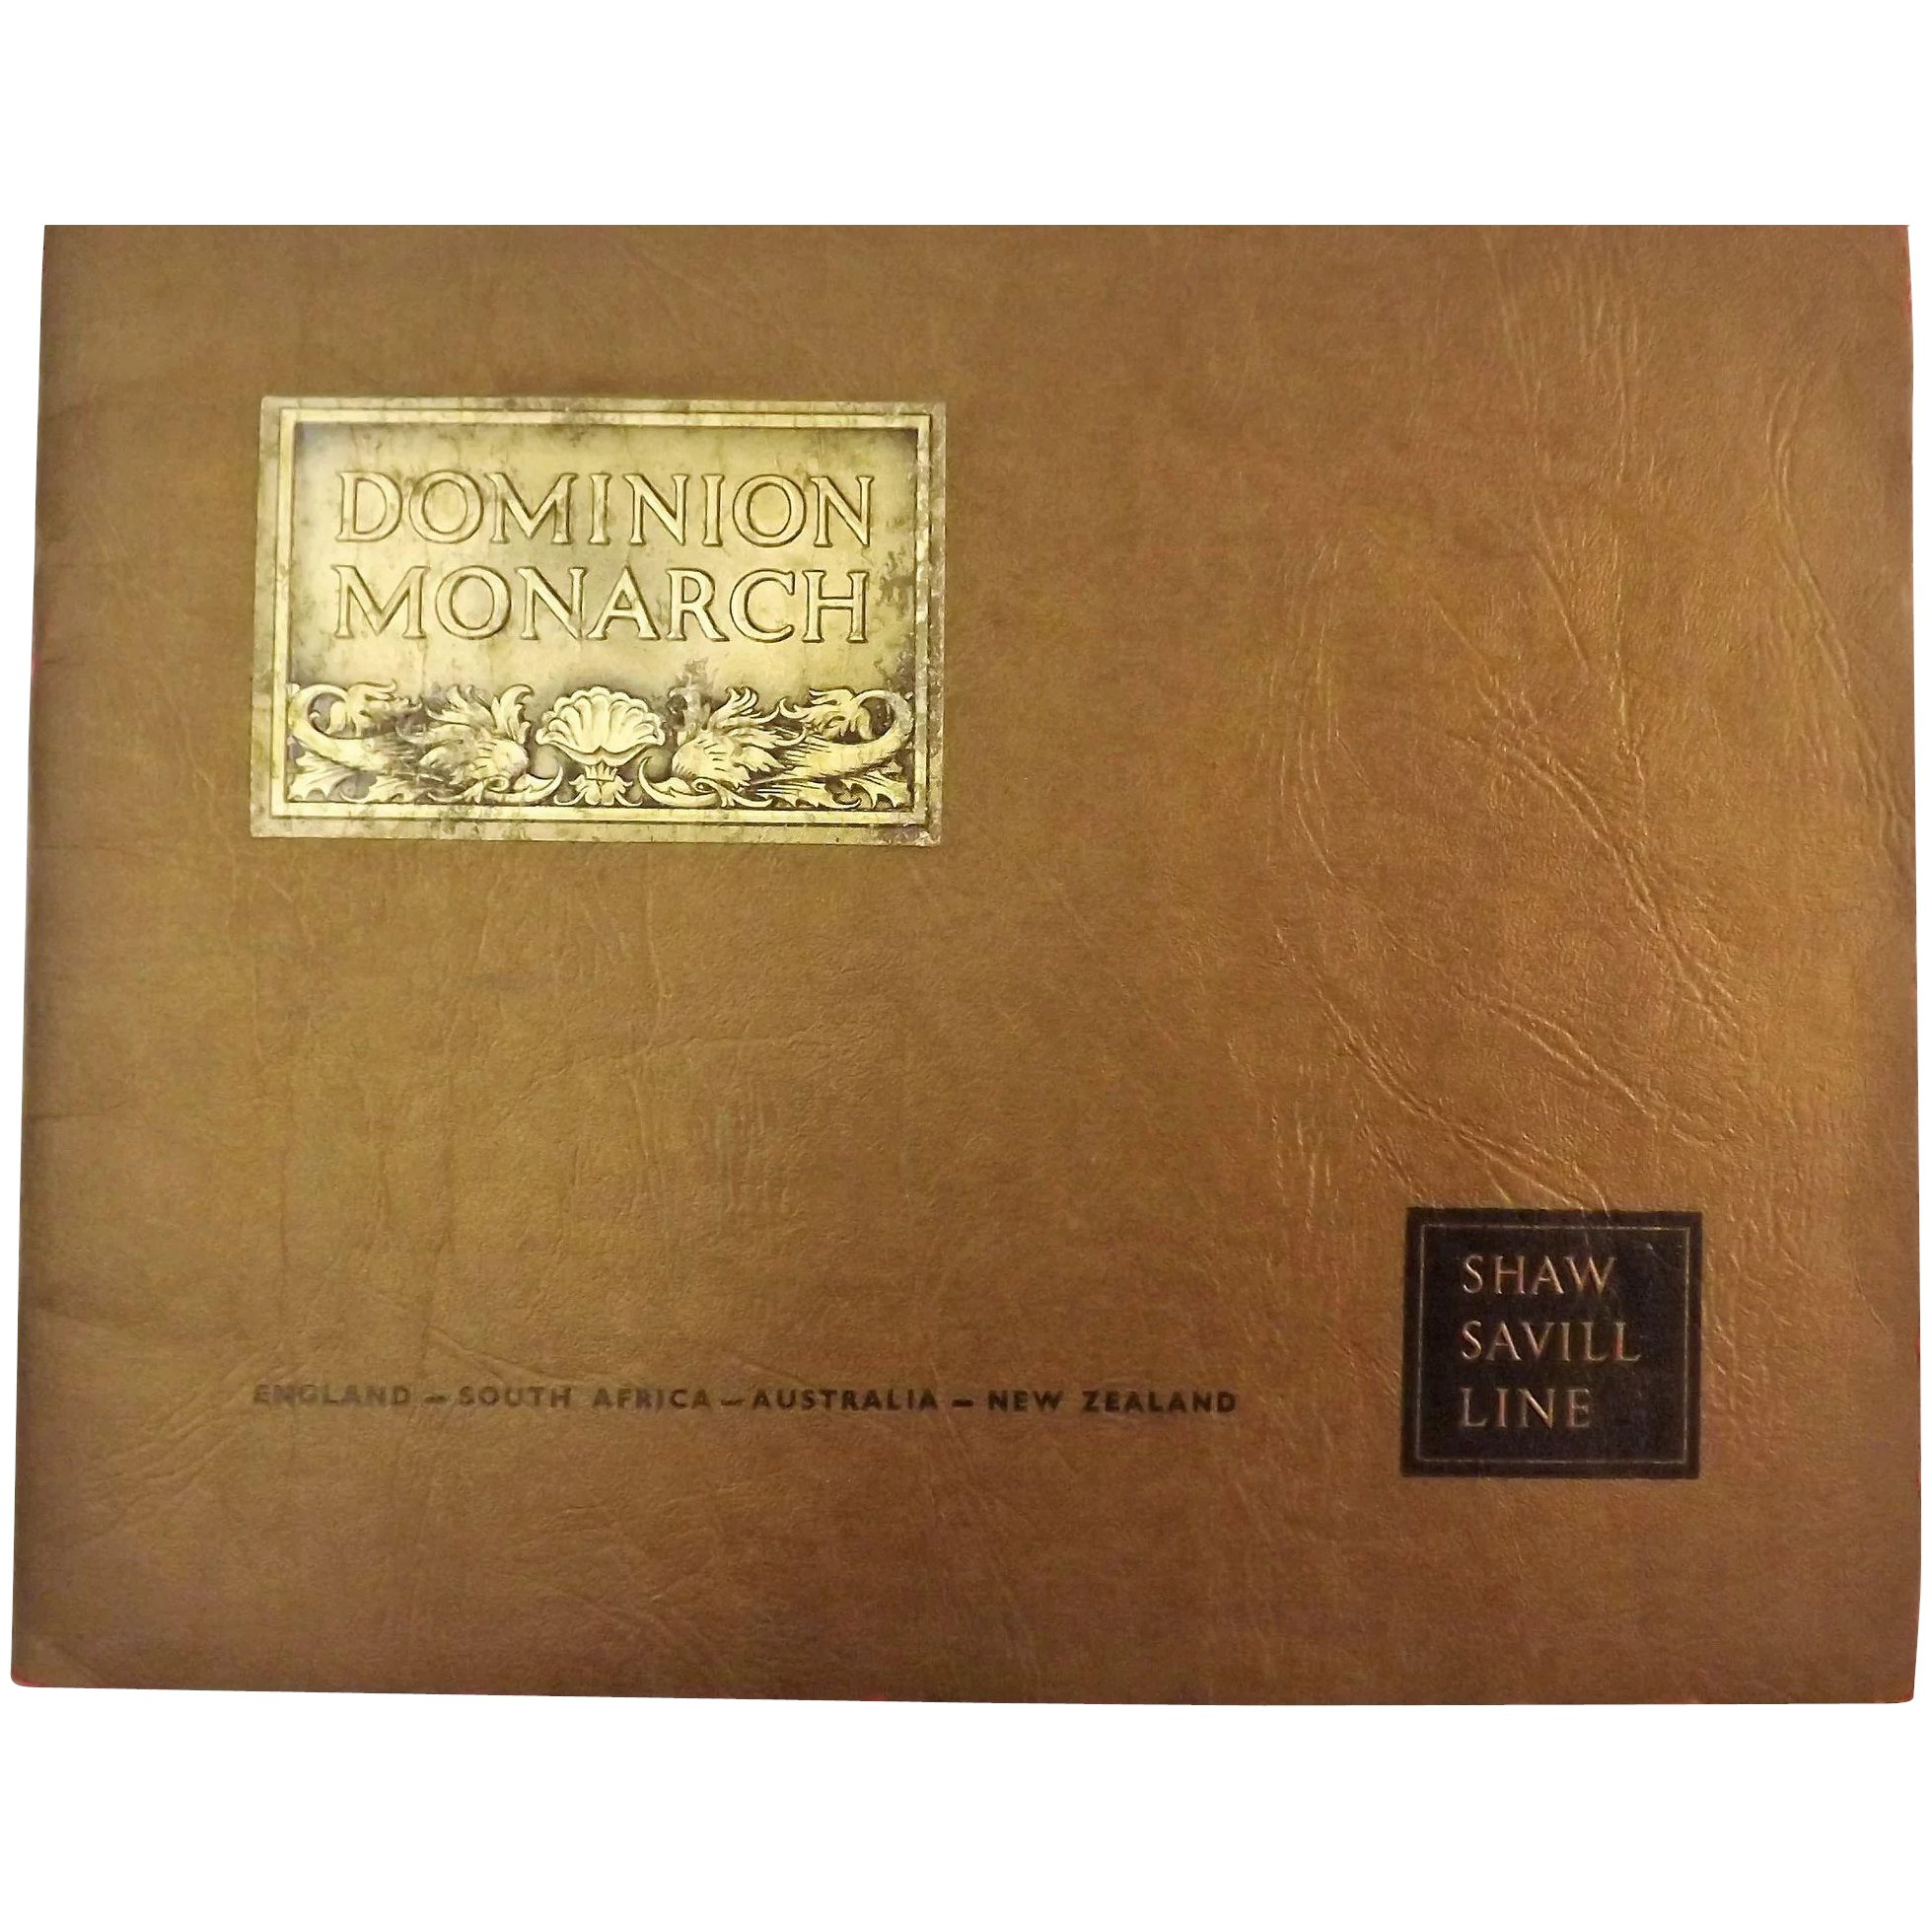 Dominion Monarch Liner 1930's Promotional Brochure - Shaw Savill Line